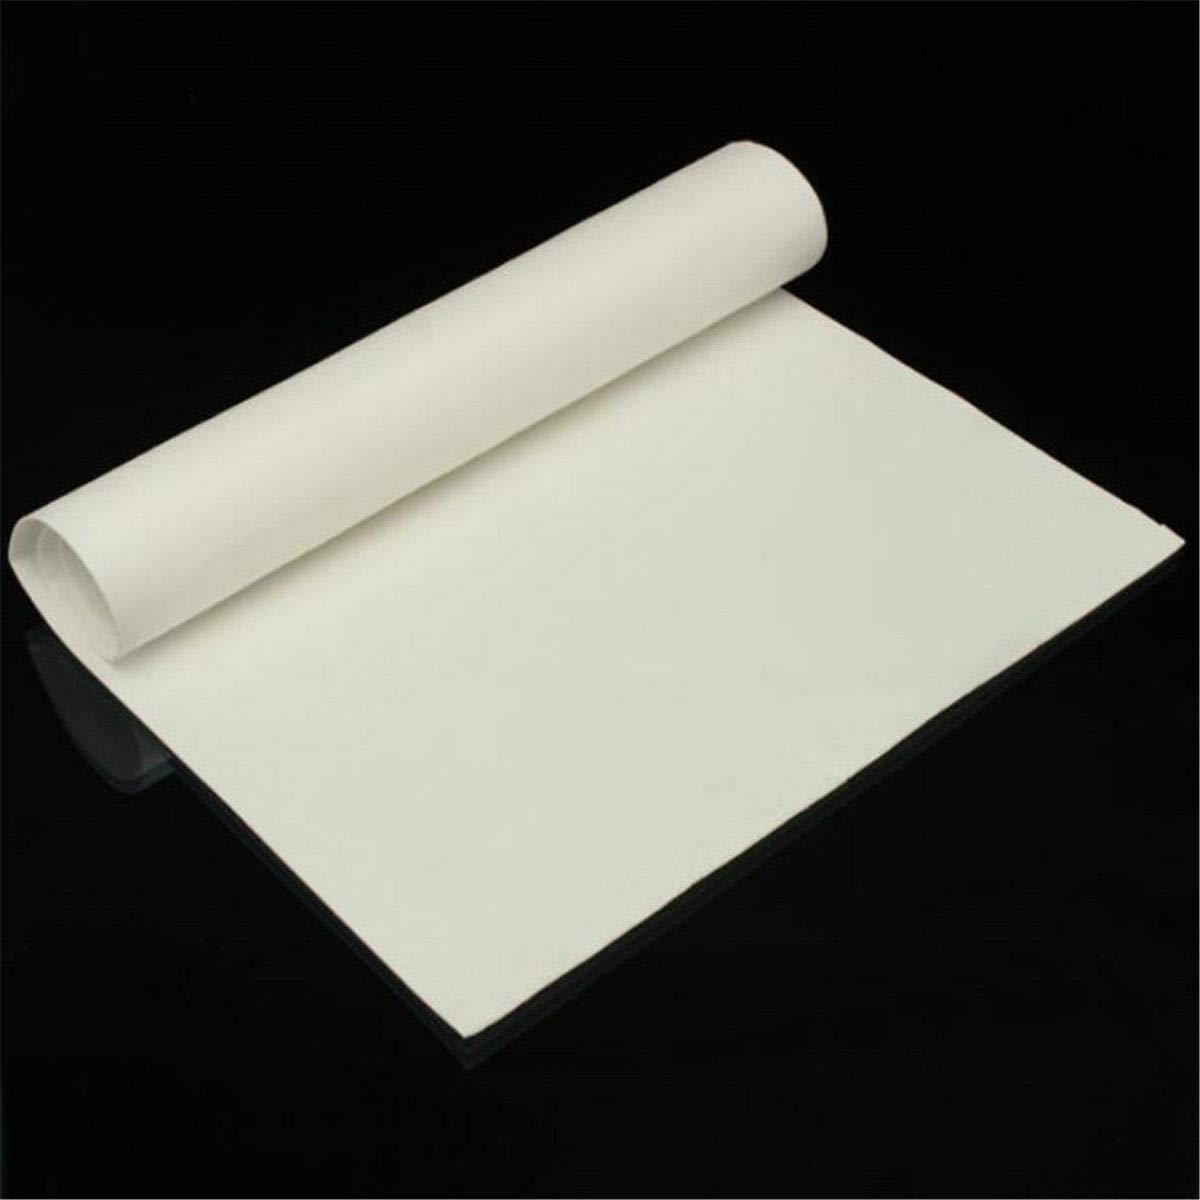 New Ceramic Fiber Paper Insulation Blanket for Wood Stoves/Inserts 30cmx61cm Sheet by Meedee